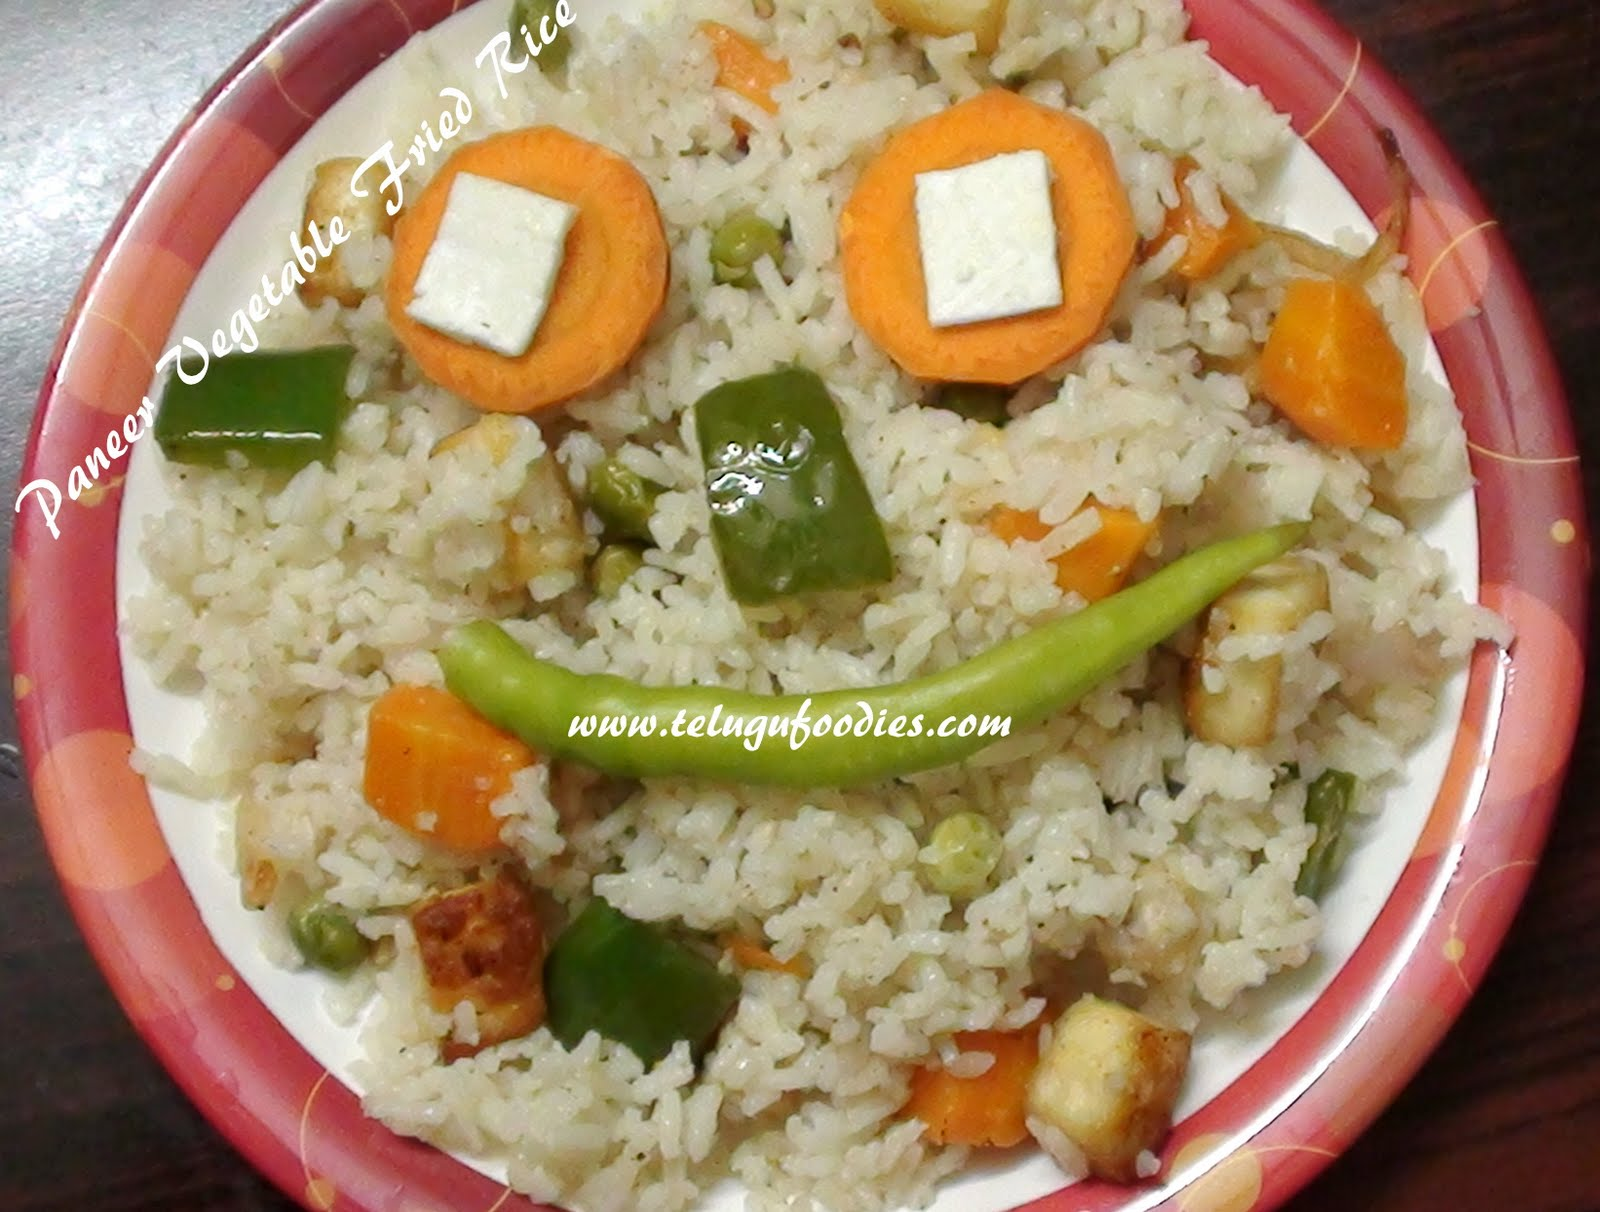 Paneer vegetable fried rice homemade telugu recipes im sending this recipe to healthy lunch box ideas event hosted by kalyani jayashree ccuart Gallery